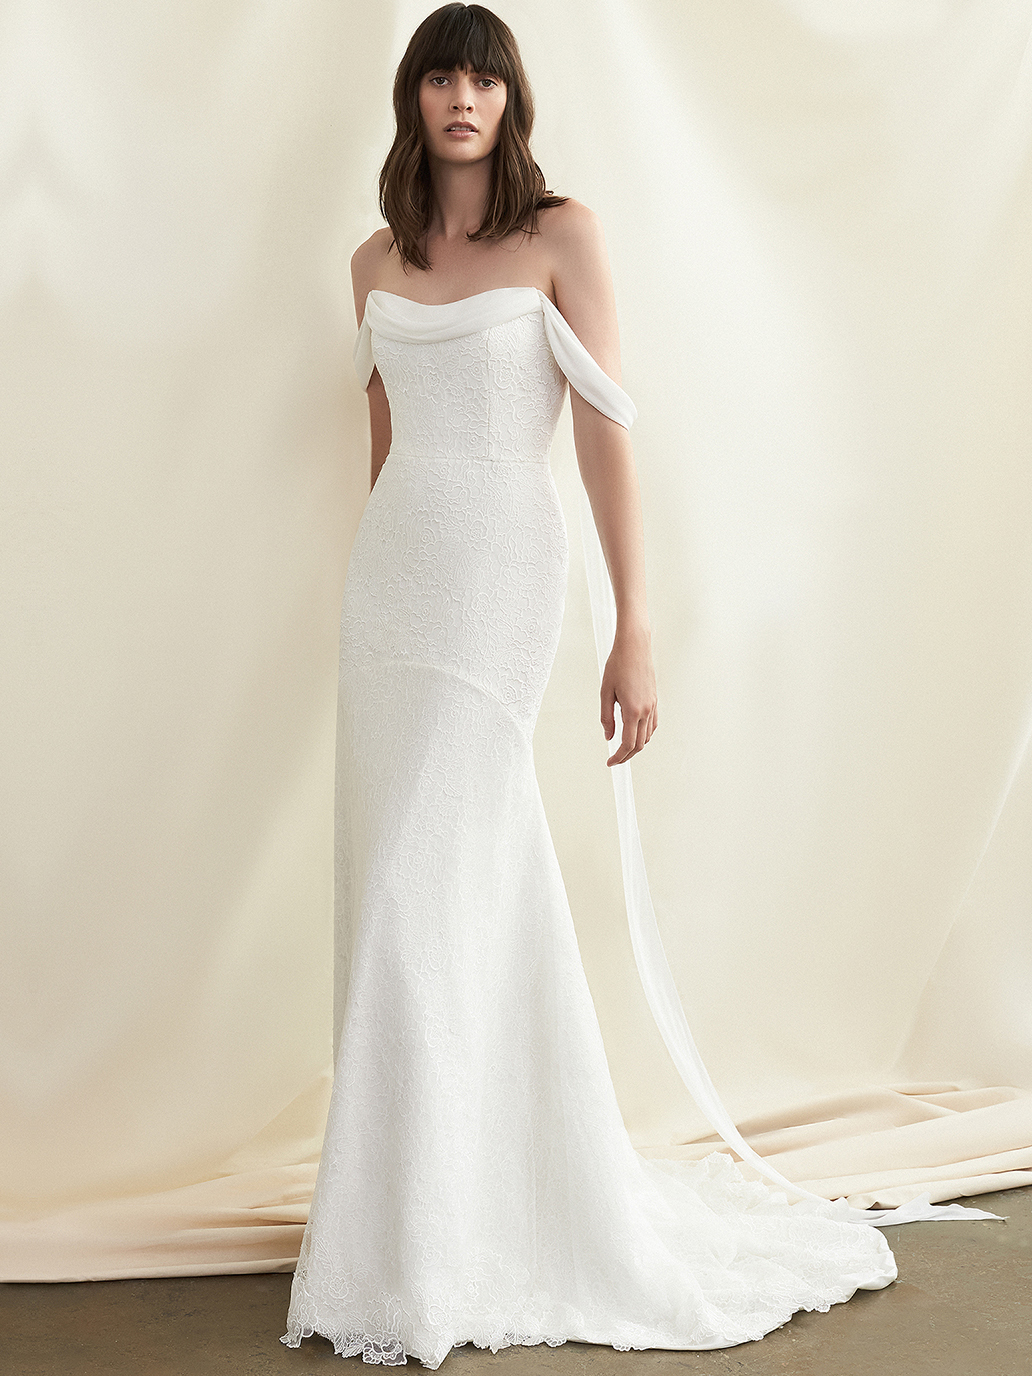 Savannah Miller off-the-shoulder scoop neck fit-and-flare wedding dress fall 2021